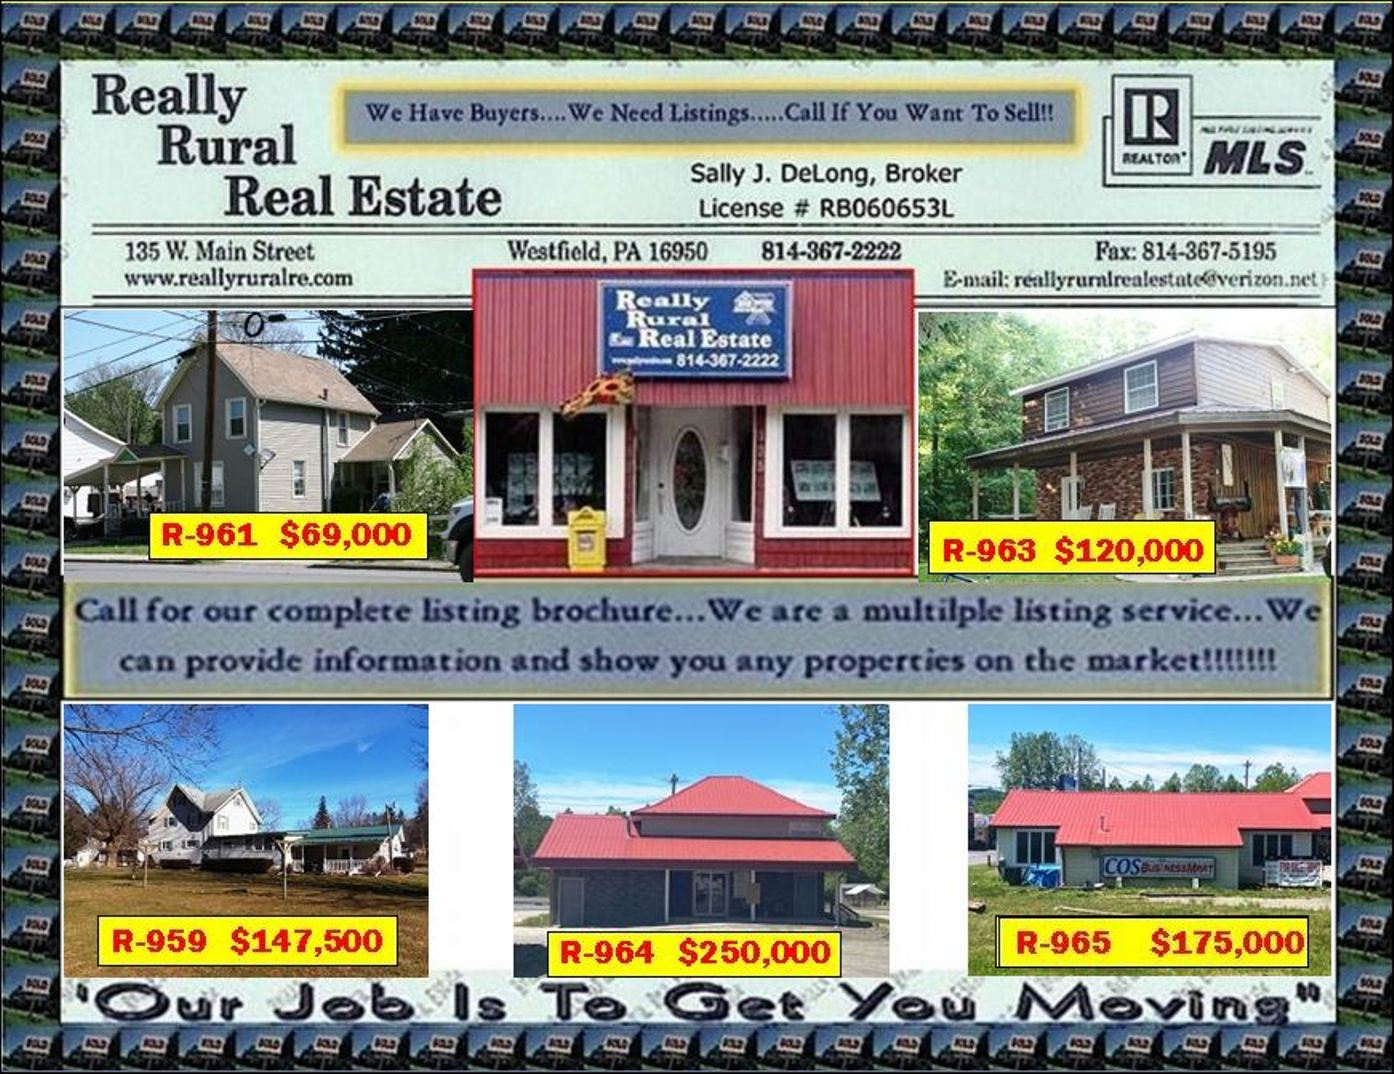 Reallt Rural Real Estate, Ulysses, PA